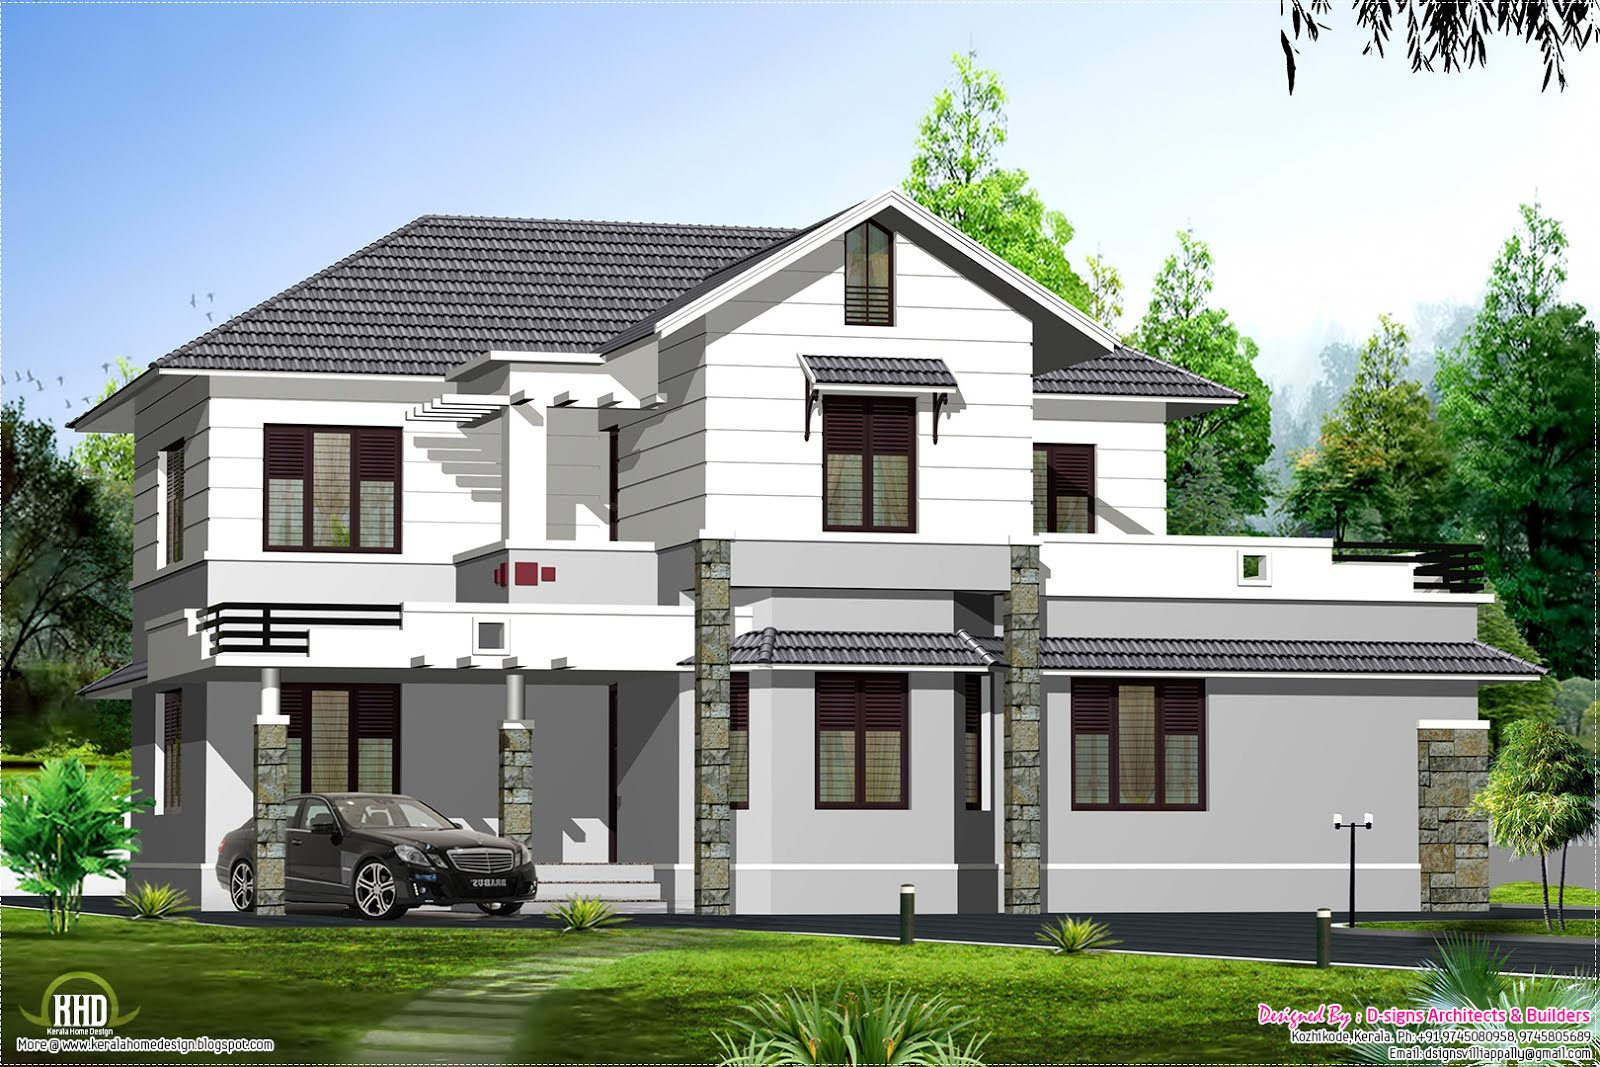 Kerala style sloping roof villa design kerala home for Colonial style home design in kerala